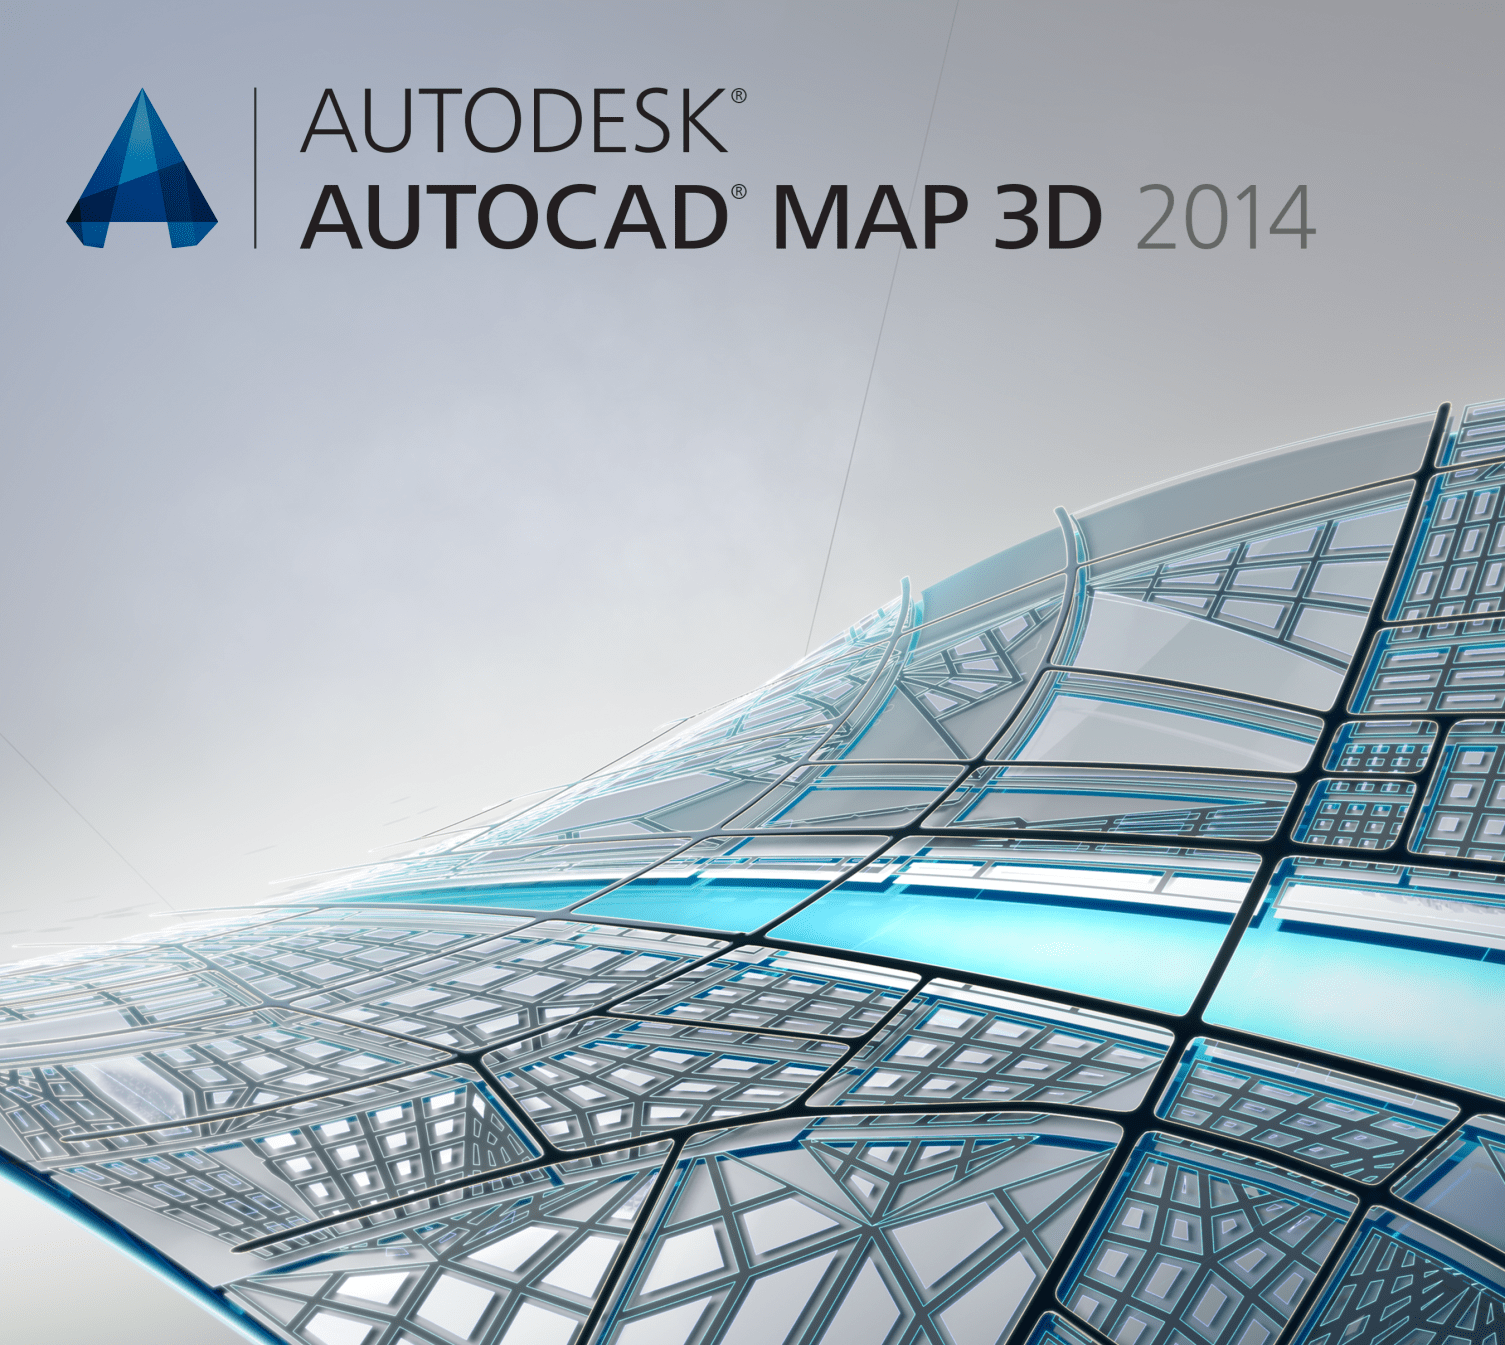 AutoCAD Civil 3D 2014 (x64) Full Version